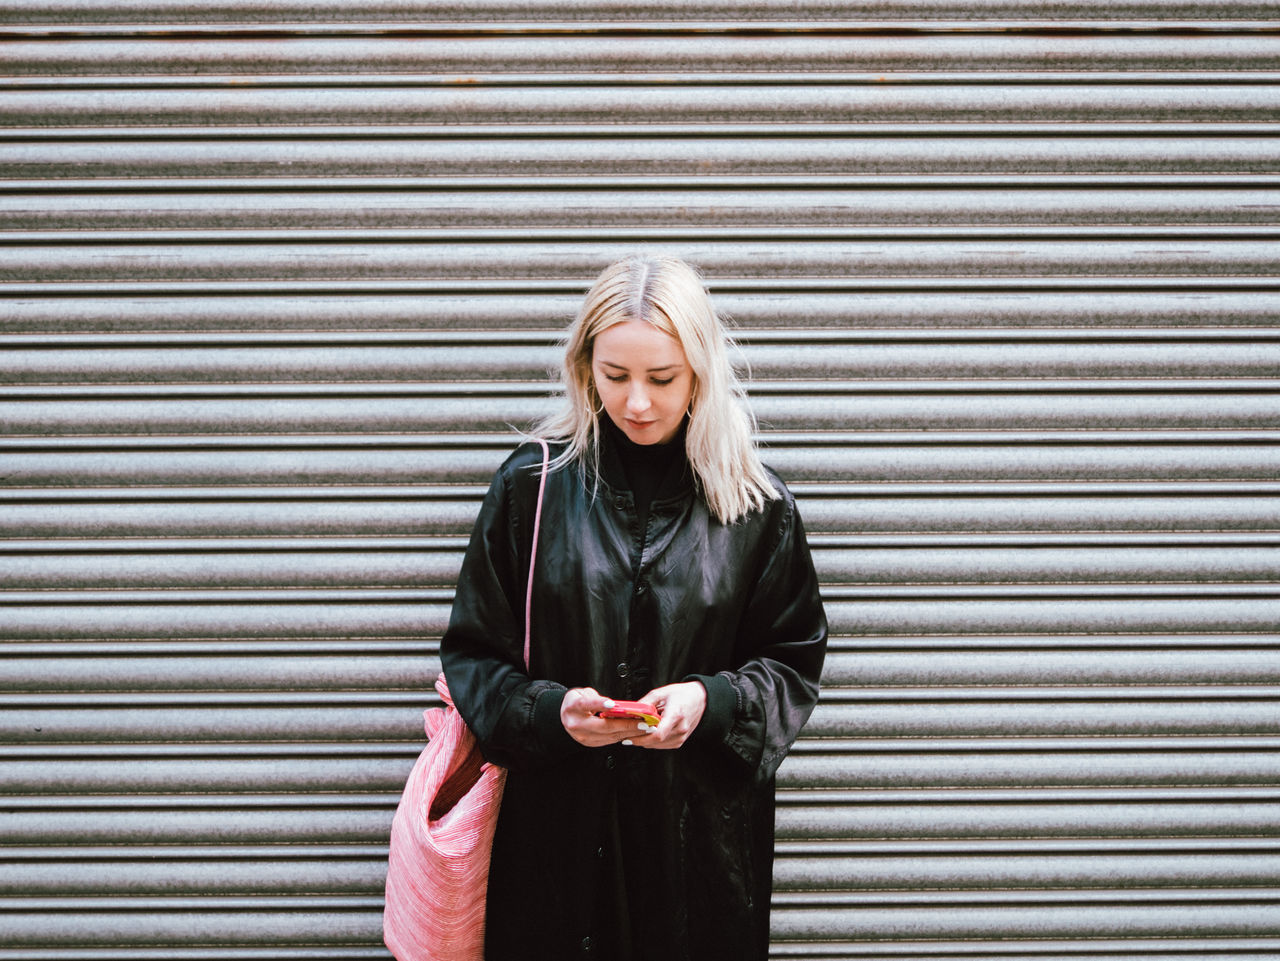 check check the phone Backgrounds Blond Hair Metal Smart Phone Young Adult Young Women Young Women Style